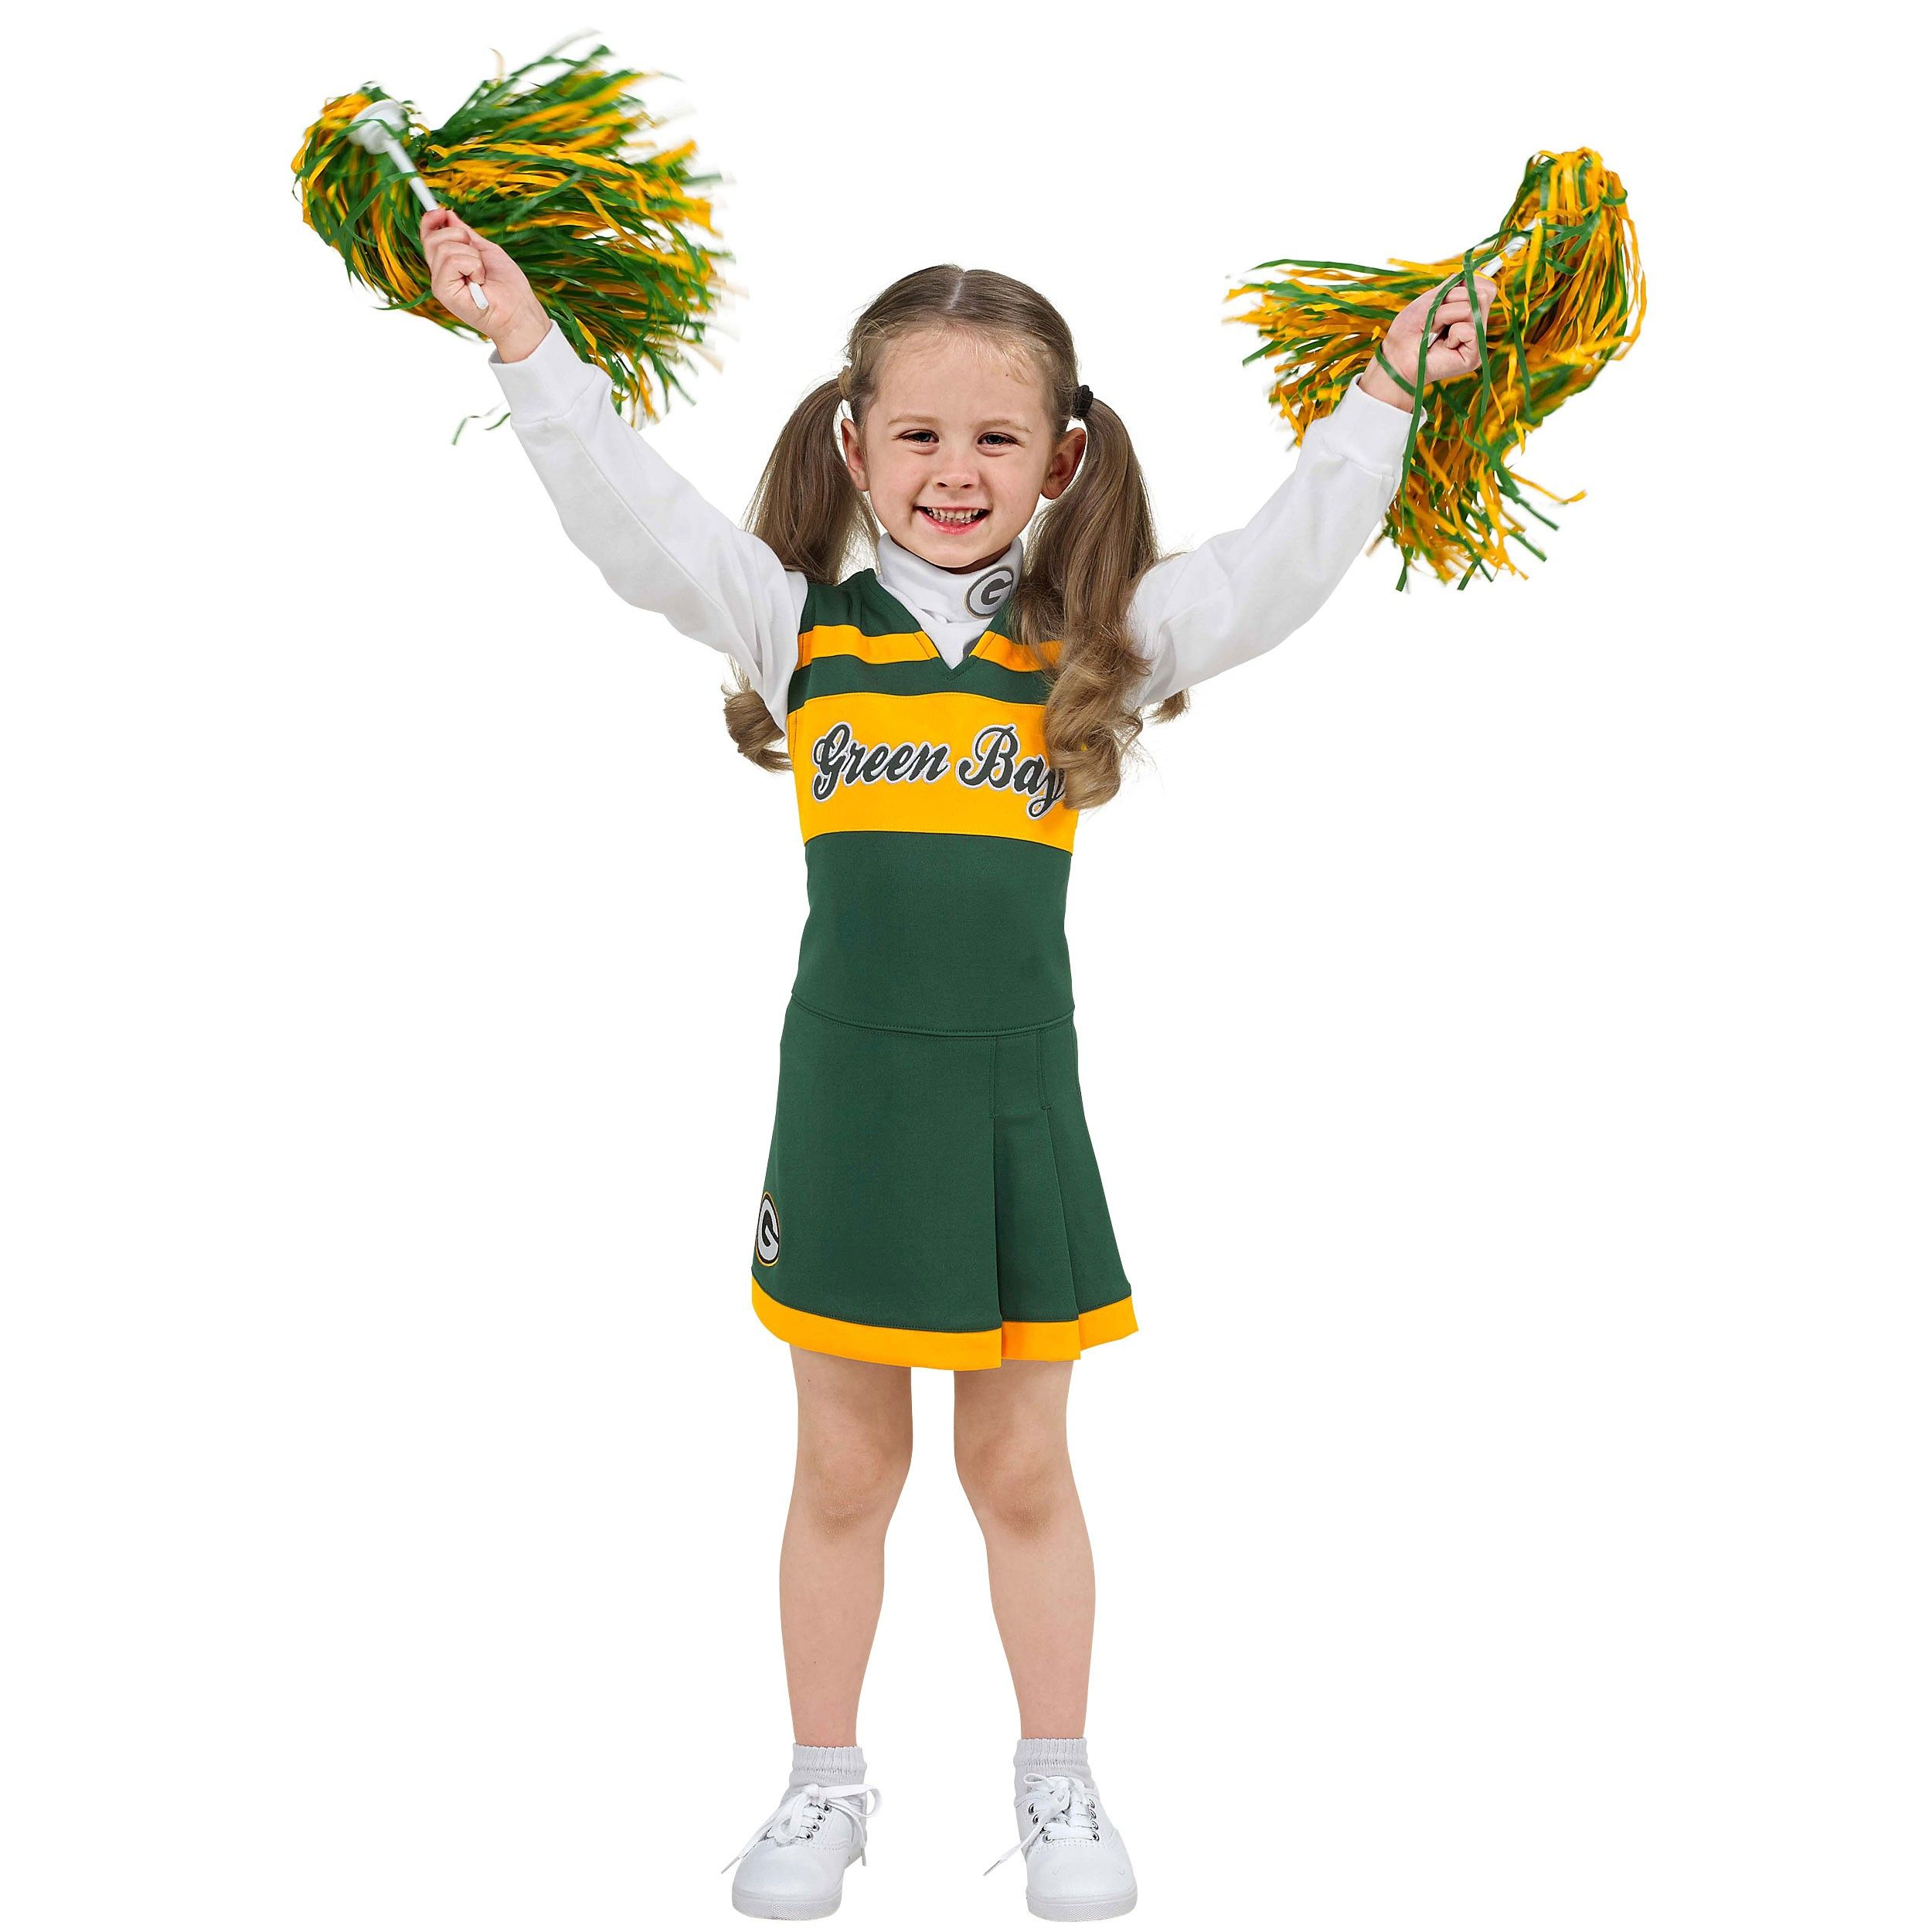 Green Bay Packers Green Bay Packers Toddler Cheerleader Dress Toddler 2t 4t Kids Green Bay Packers Packers Pro Shop Green Bay Packers Girl